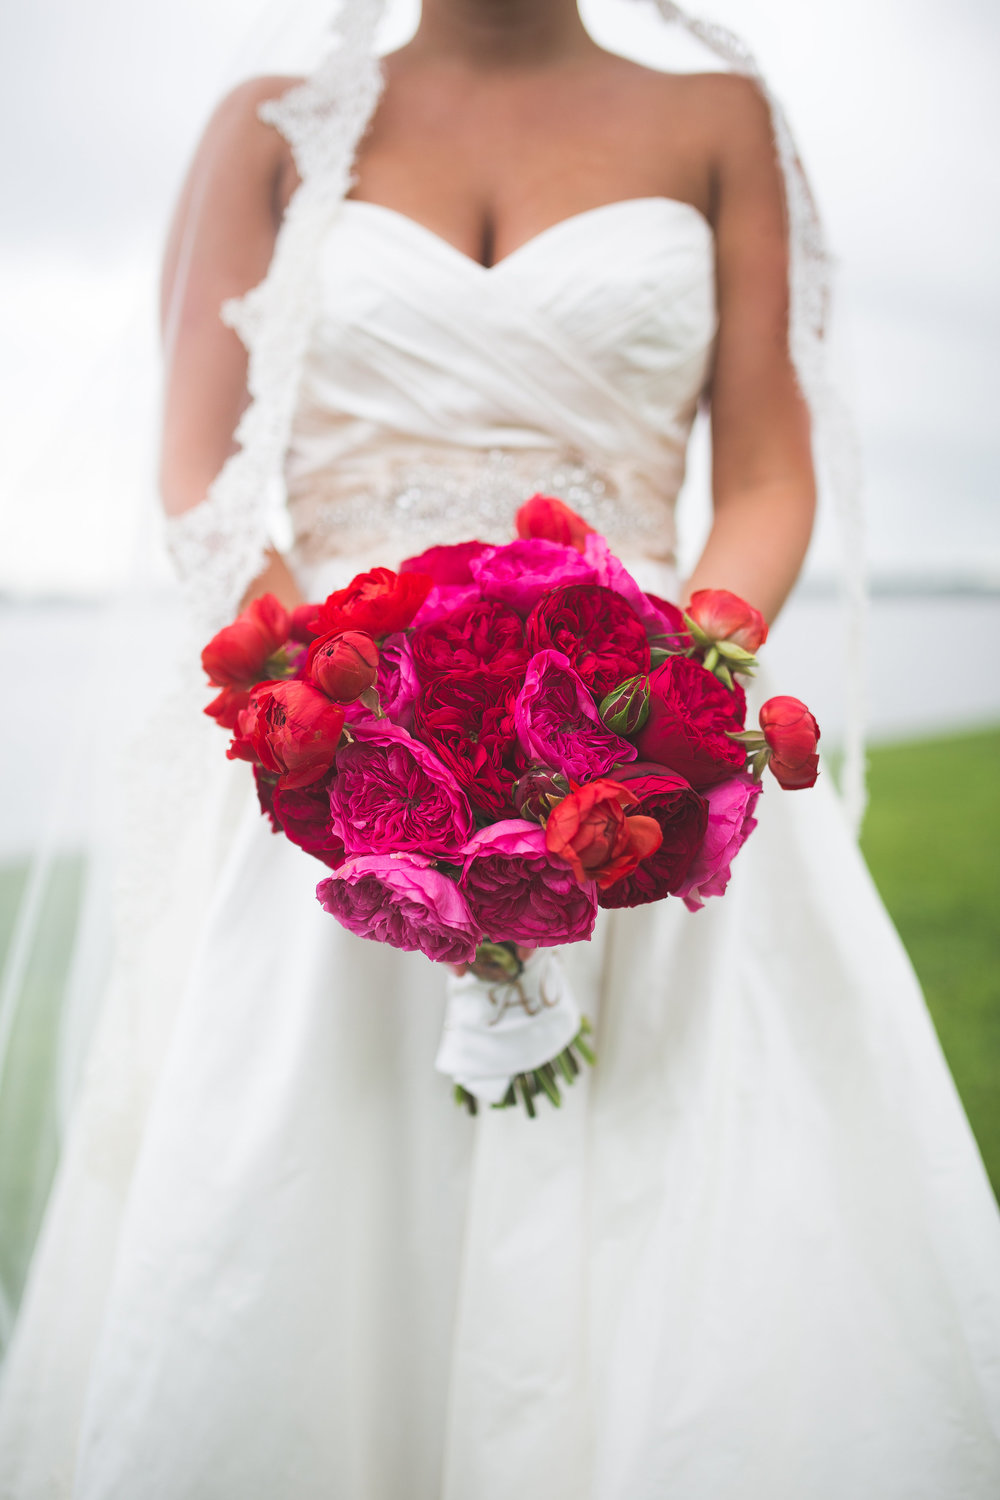 Island House wedding by Jenna Marie Photogrpahy